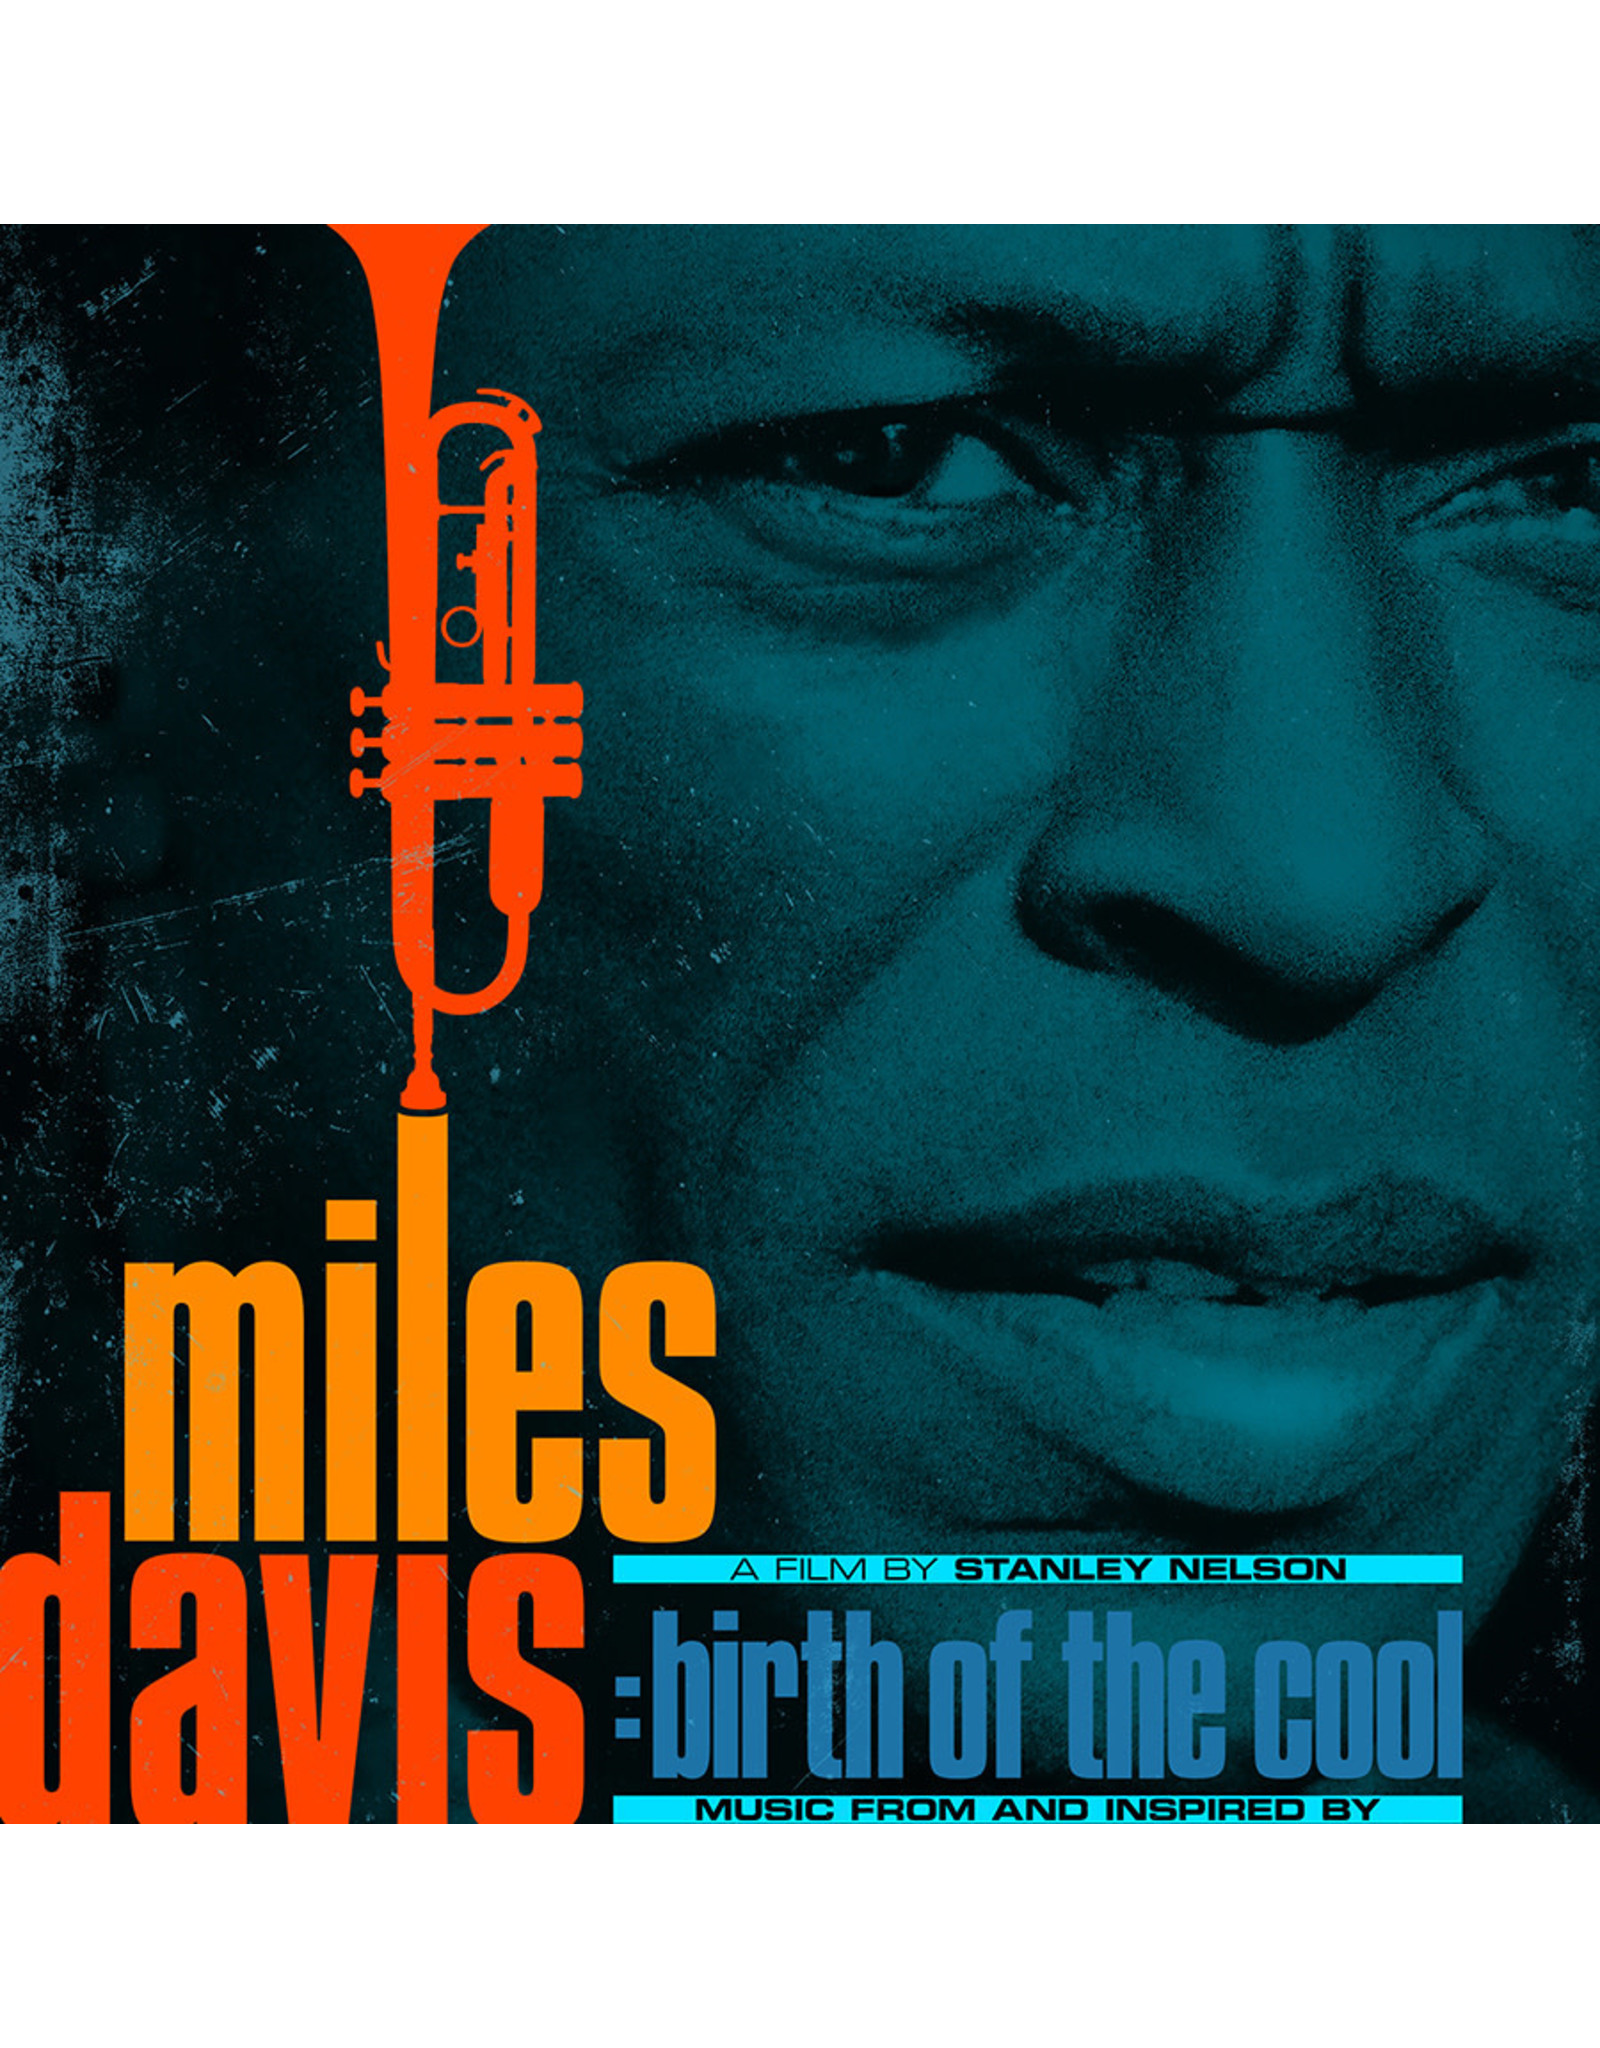 Legacy Davis, Miles: Birth of the Cool OST LP